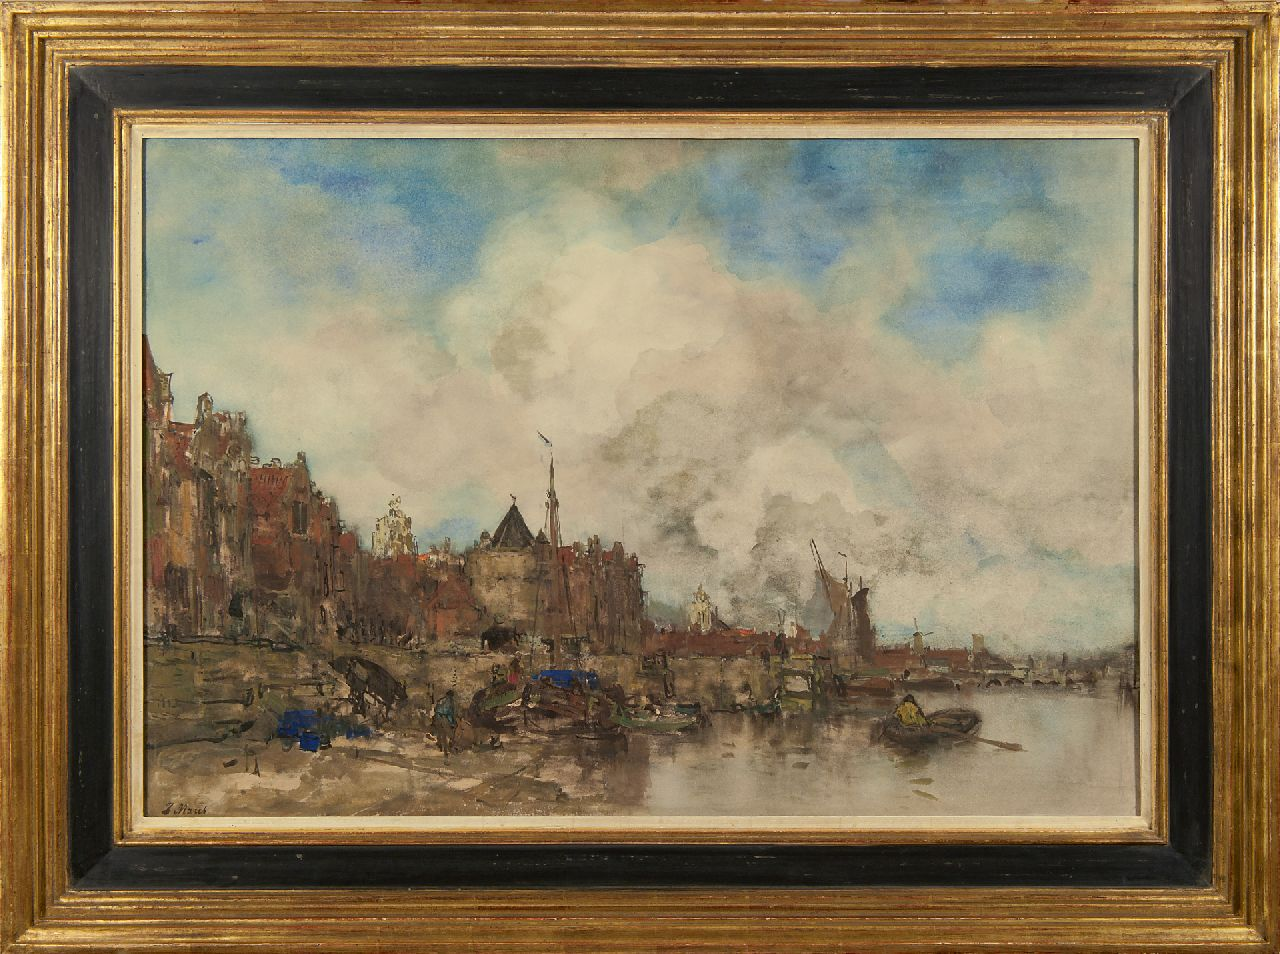 Maris J.H.  | Jacobus Hendricus 'Jacob' Maris | Watercolours and drawings offered for sale | A capriccio view of Amsterdam, watercolour on paper 64.0 x 91.0 cm, signed l.l. and painted ca. 1885